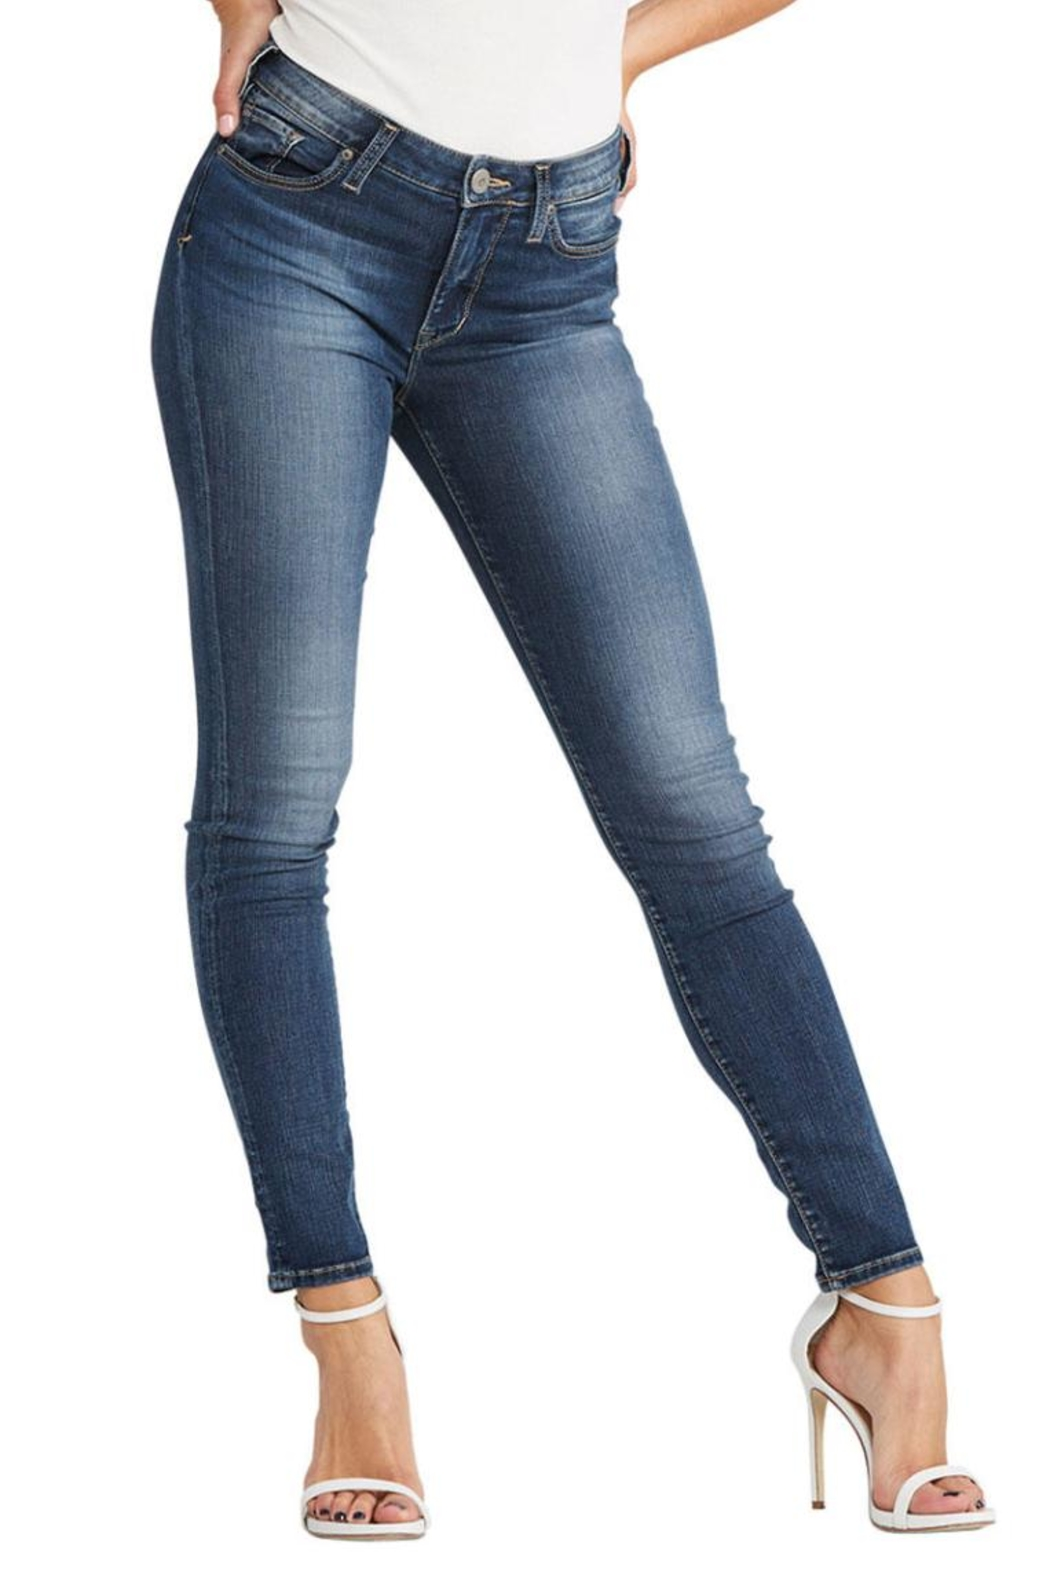 Silver Jeans Co. Bleeker Classic Jegging - Main Image